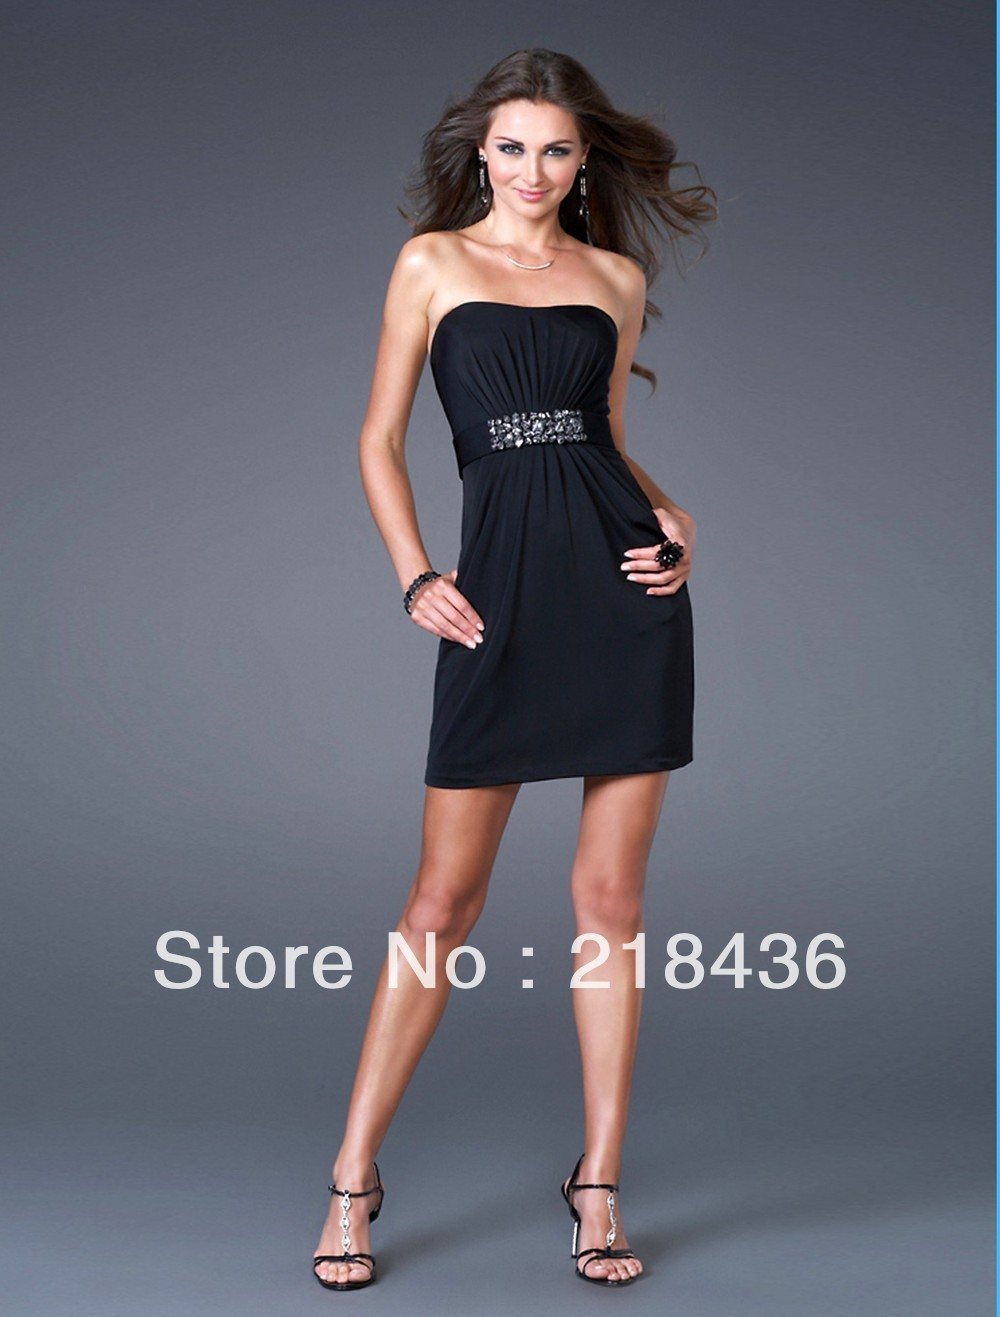 2013 Style Sheath / Column Strapless Beading Sleeveless Short / Mini Chiffon Cocktail Dresses / Homecoming Dresses (XZ02290)(China (Mainland))